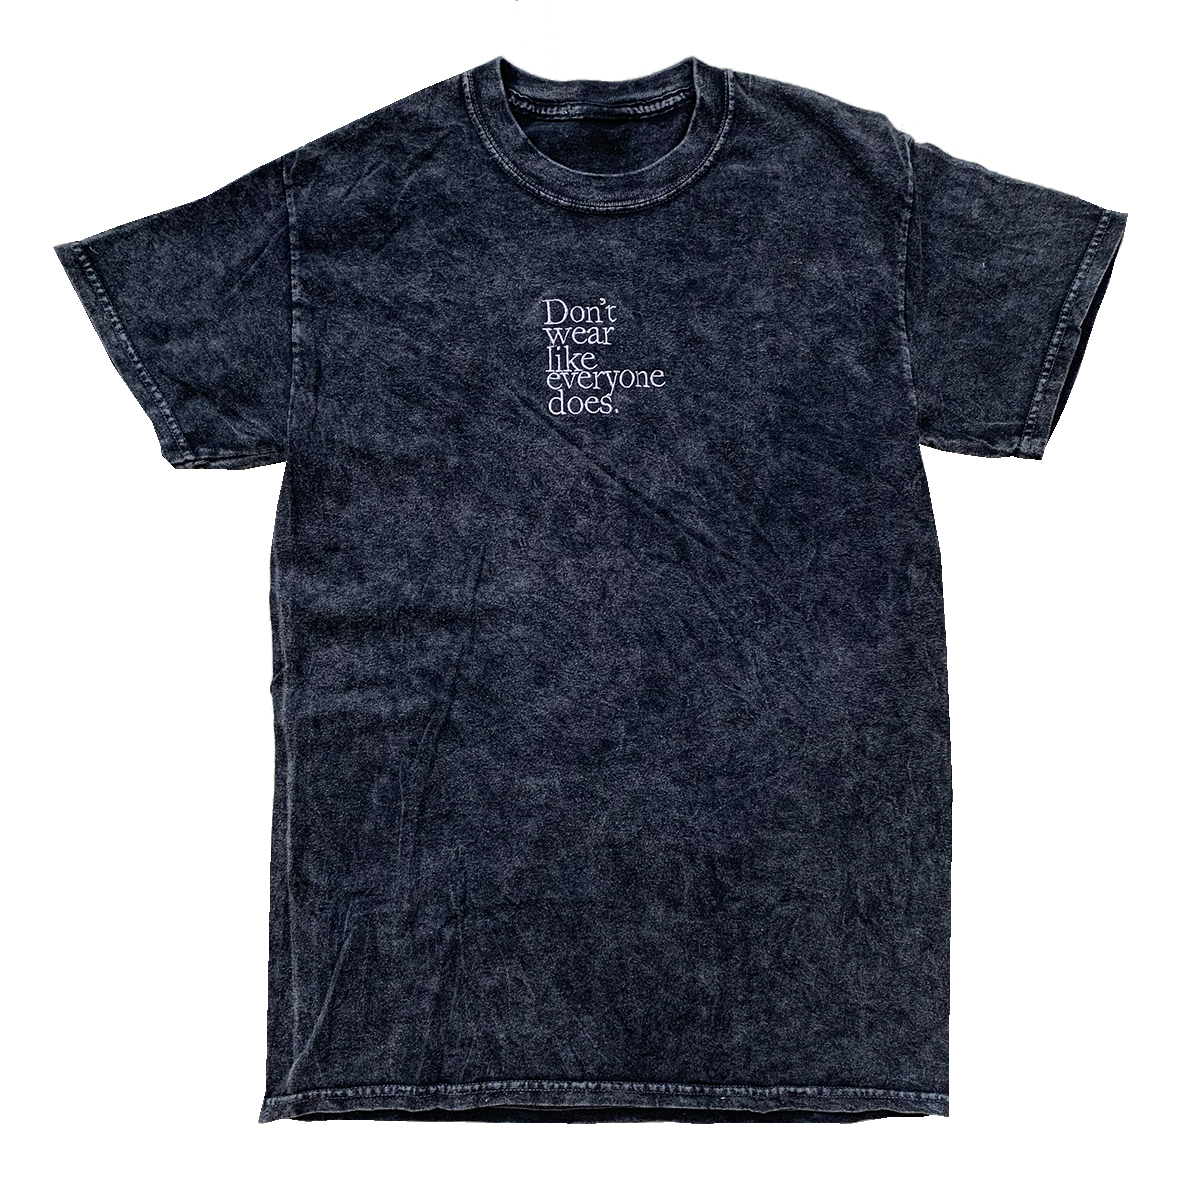 Don't wear like everyone does. Tie-dye & Embroidery Tee